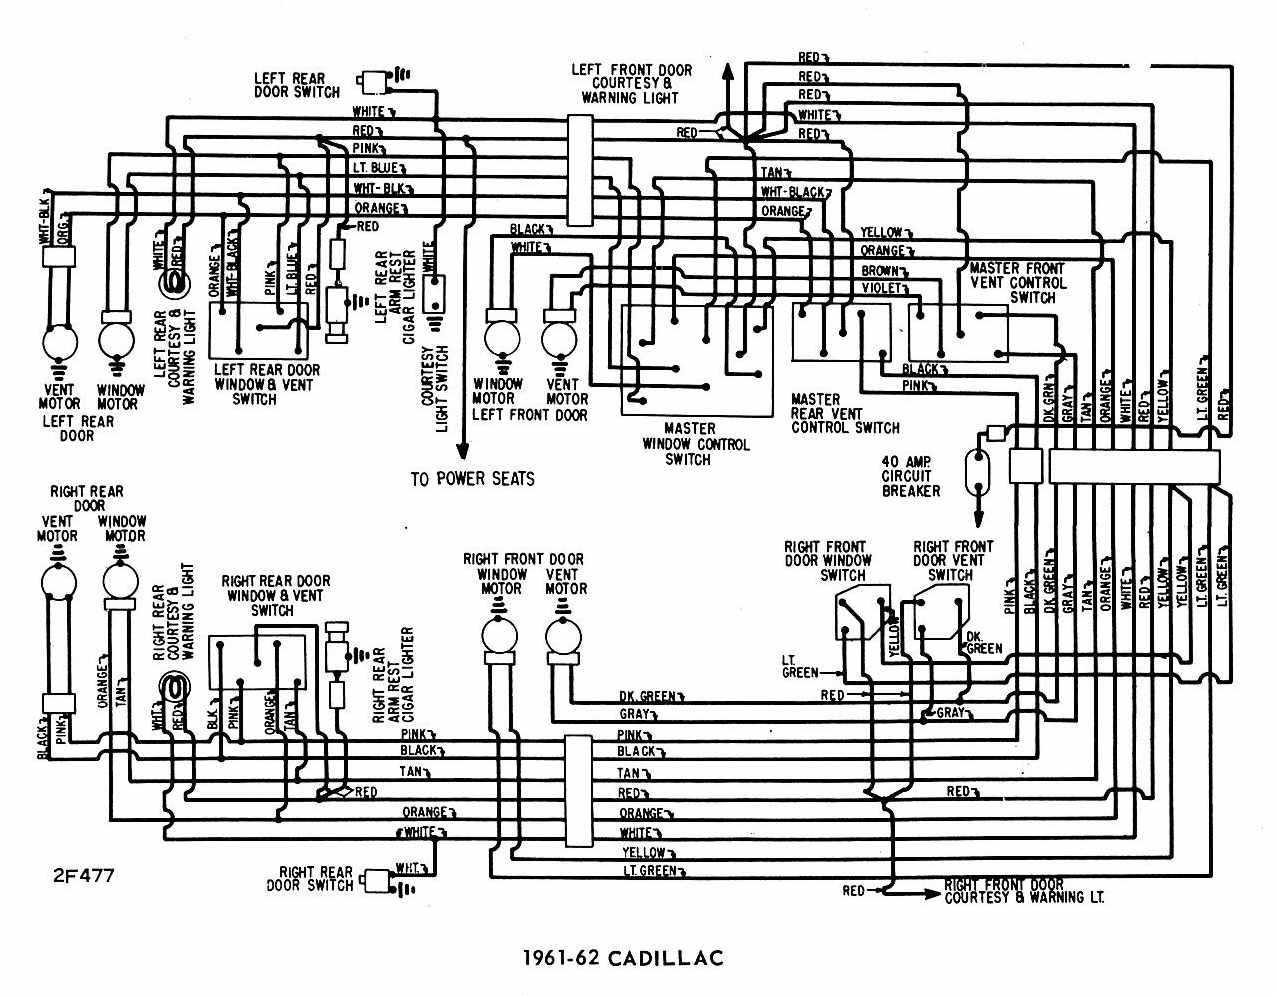 05 deville a c wiring schematic trusted wiring diagram u2022 rh soulmatestyle co Chevy Alternator Wiring Diagram 1995 cadillac deville alternator wiring diagram